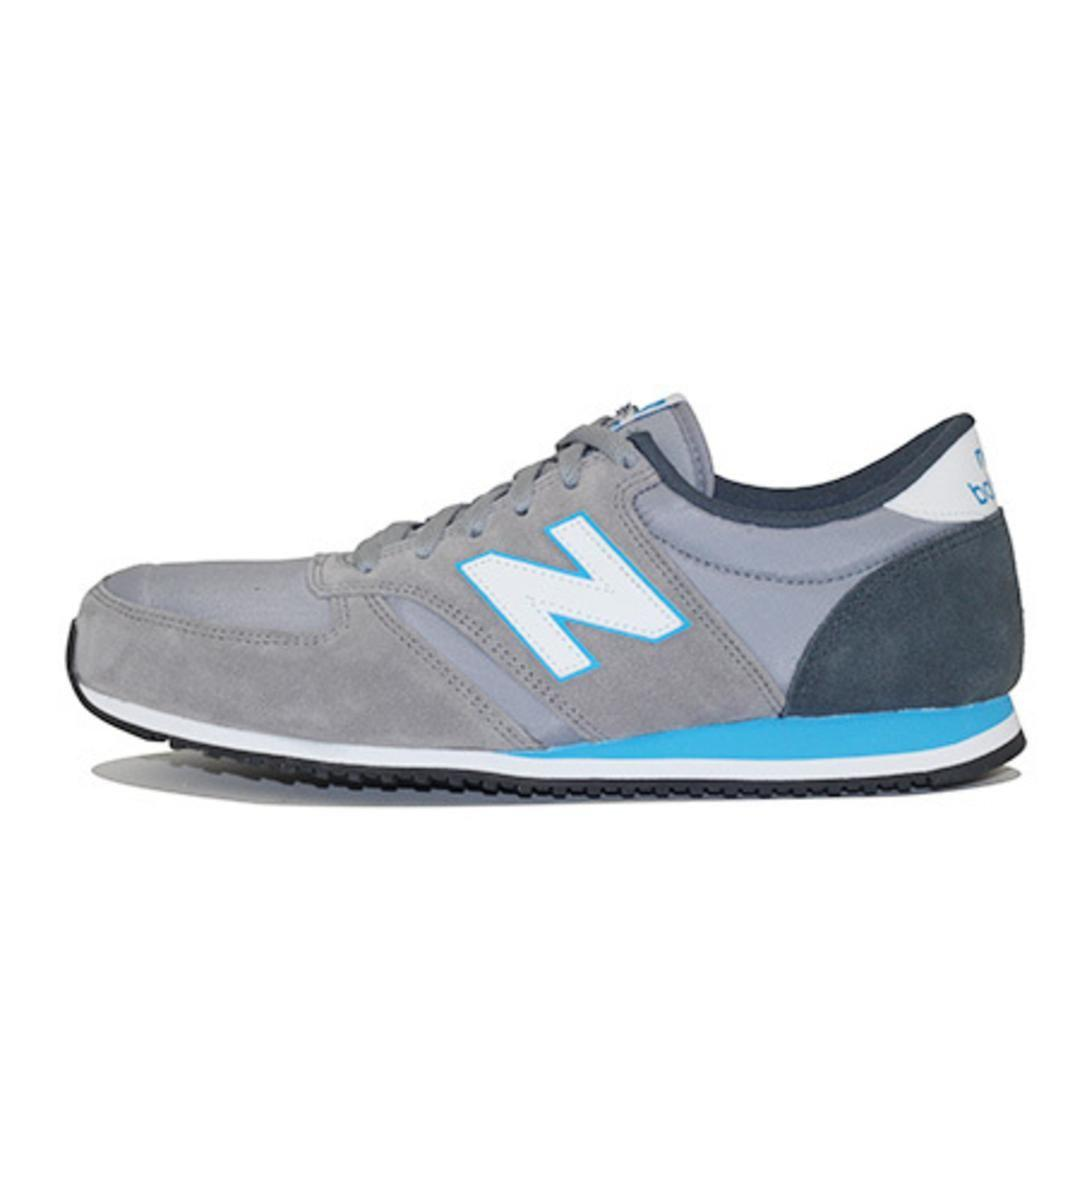 meilleur pas cher 0bf93 a5e09 Lyst - New Balance 420 70s Running Grey Sneakers in Gray for Men